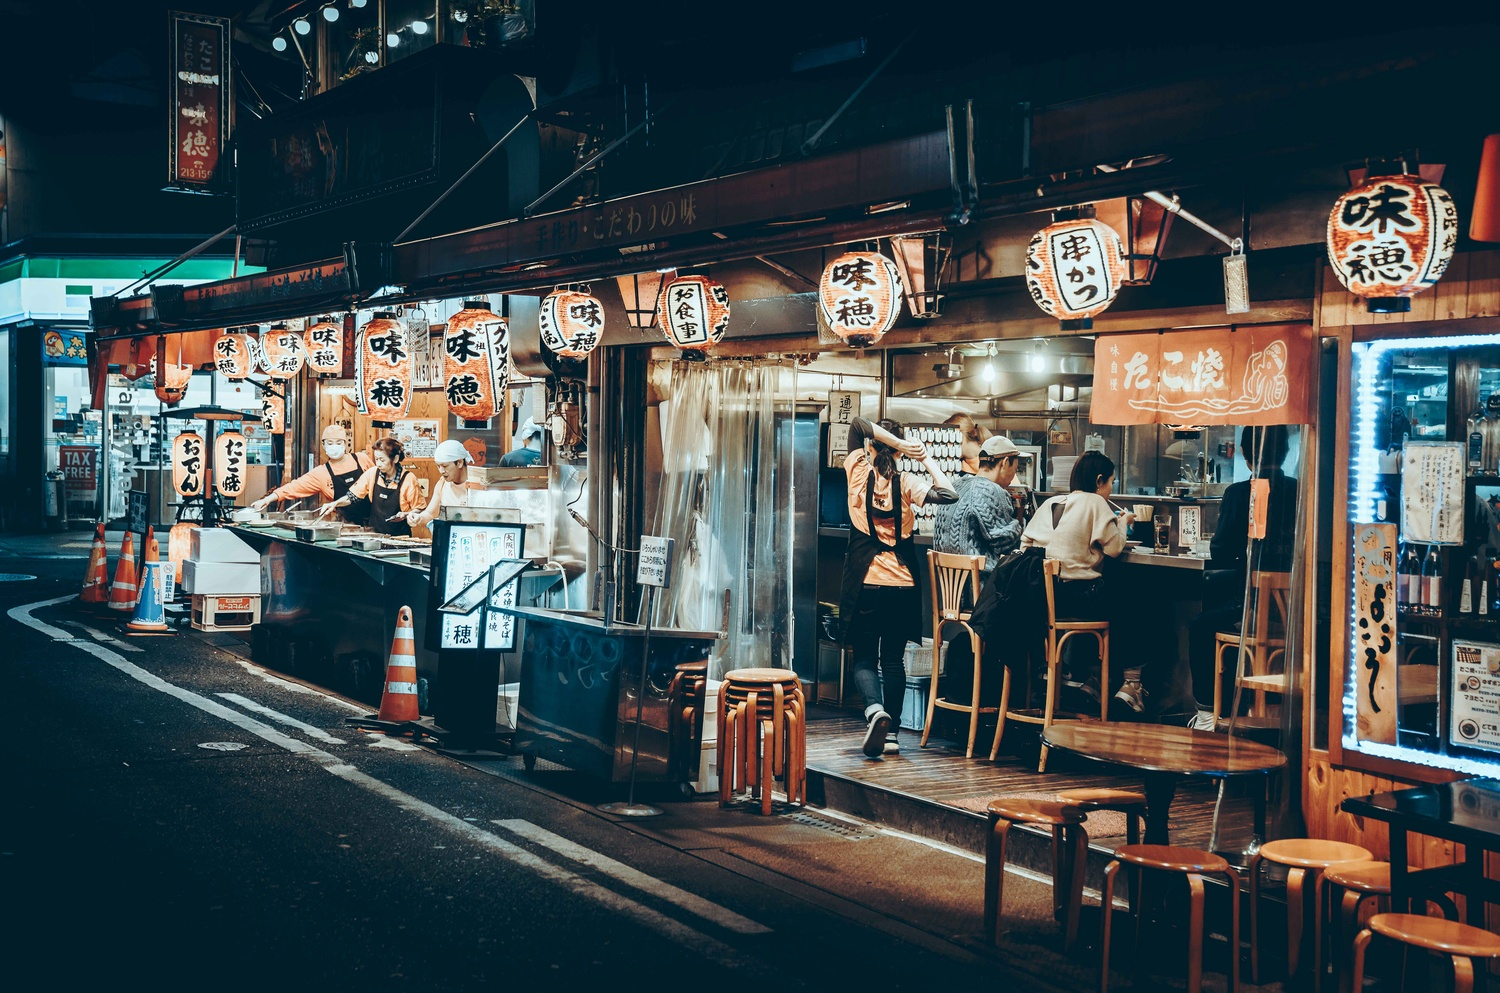 Eating Out in Osaka by Steve Roe